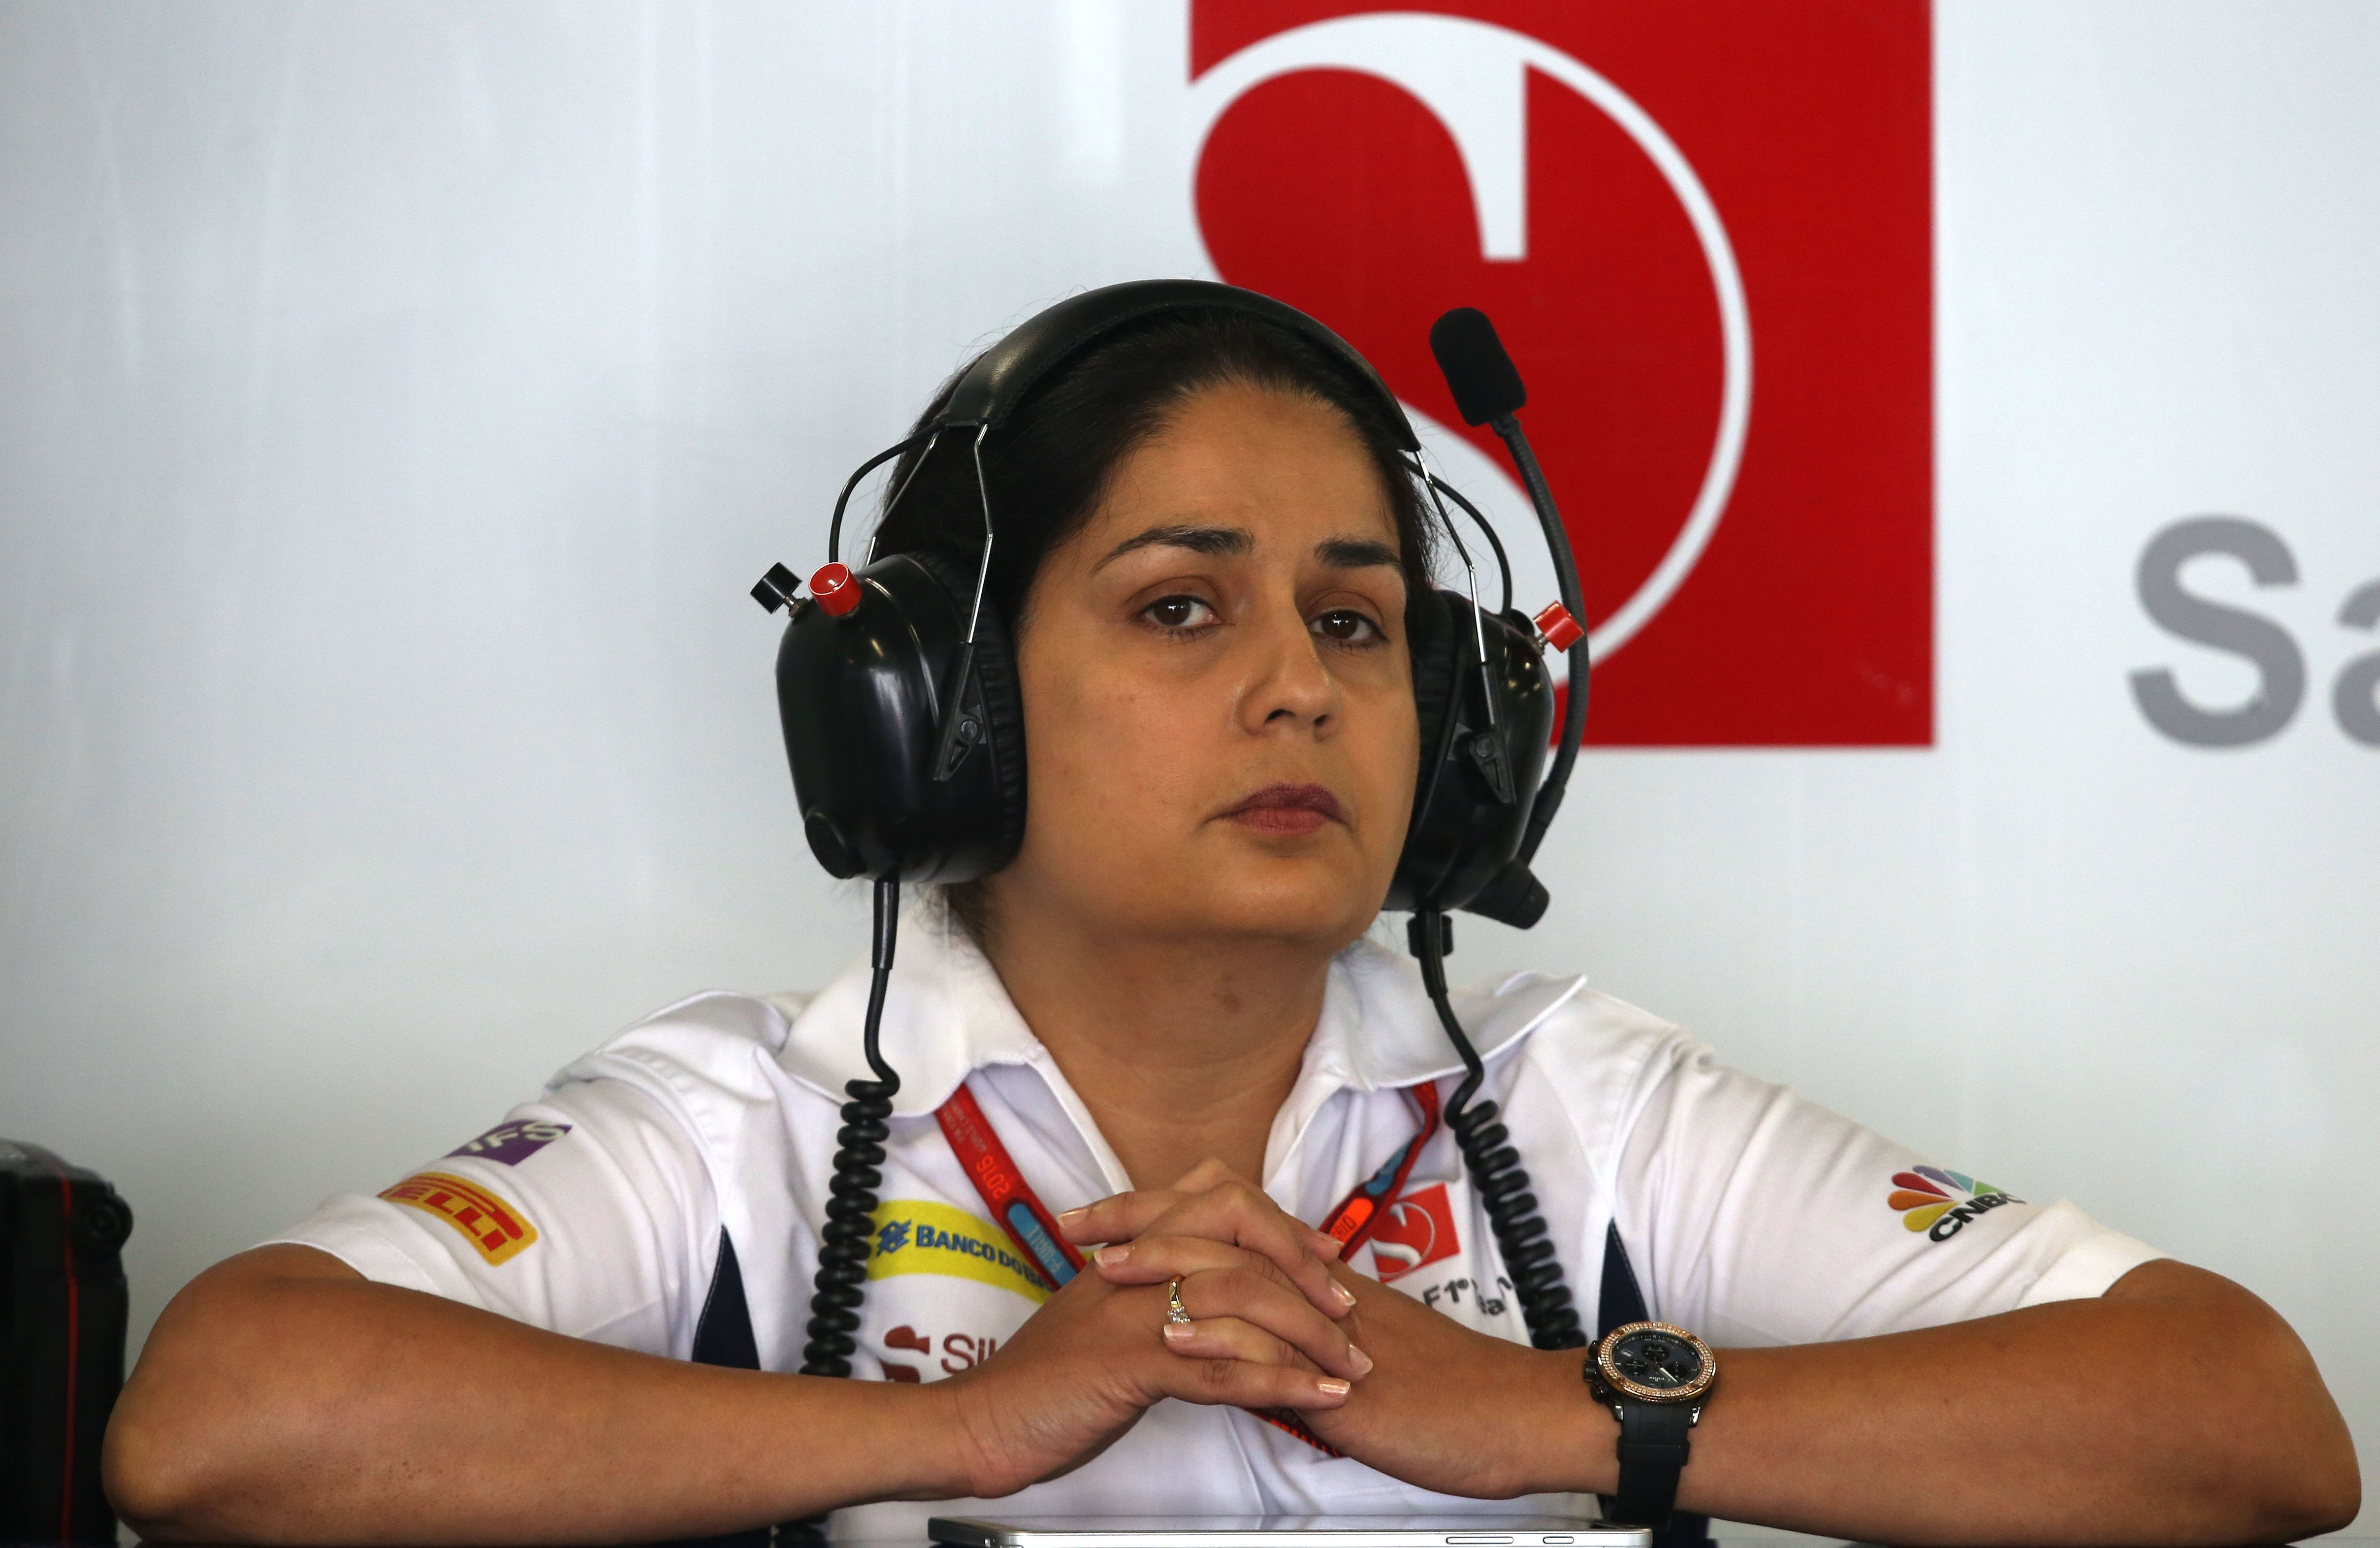 Kaltenborn wants F1 owners to address financial inequality issue ASAP